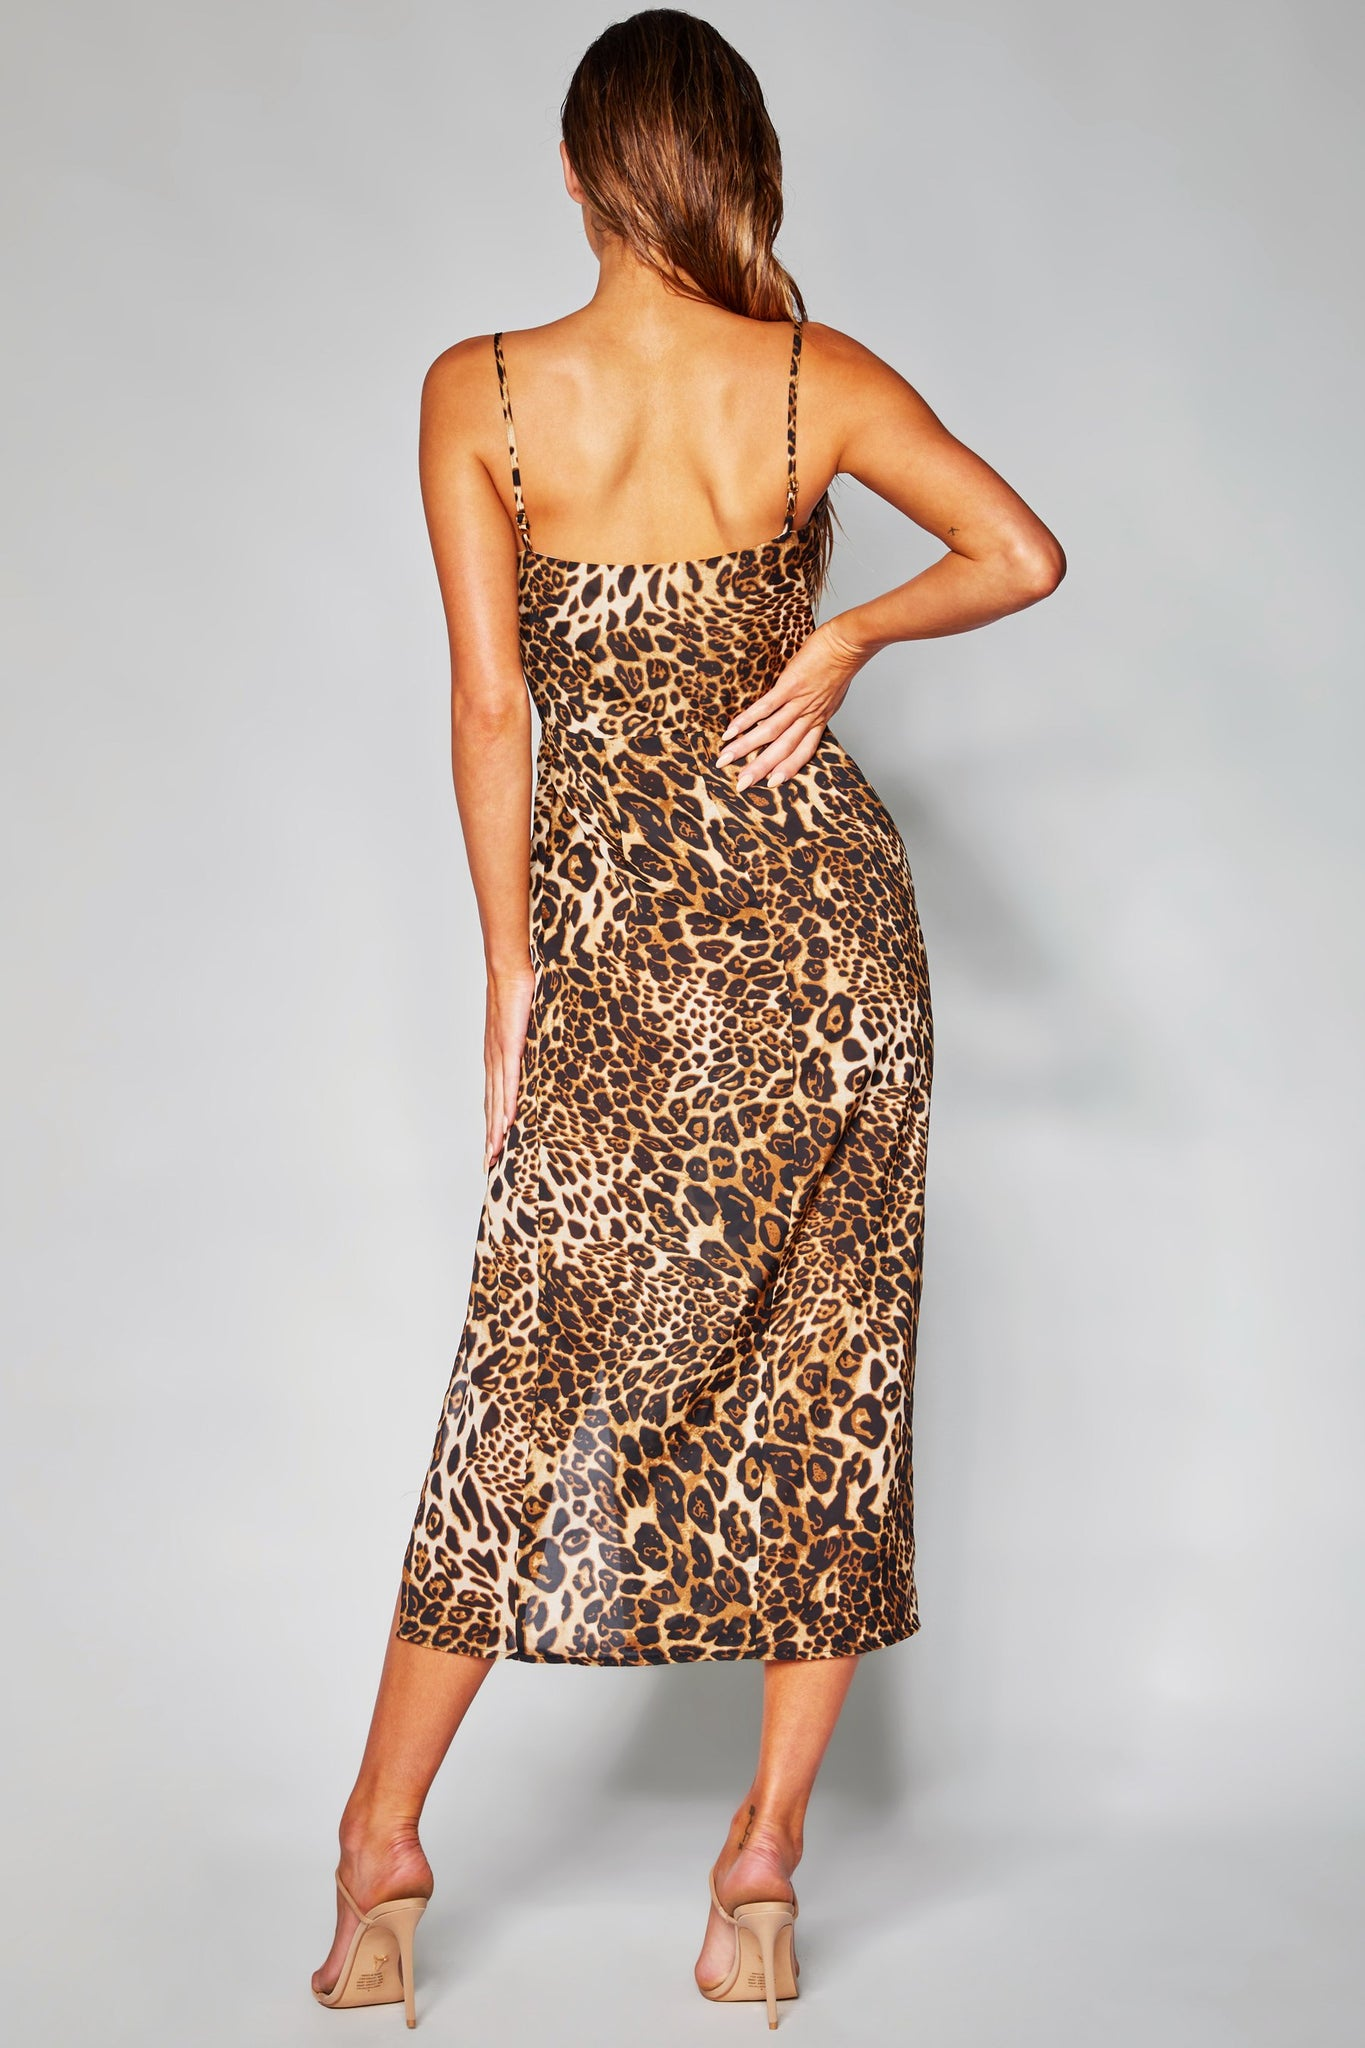 Kimberly Cowl Front Midi Dress - Leopard - MESHKI